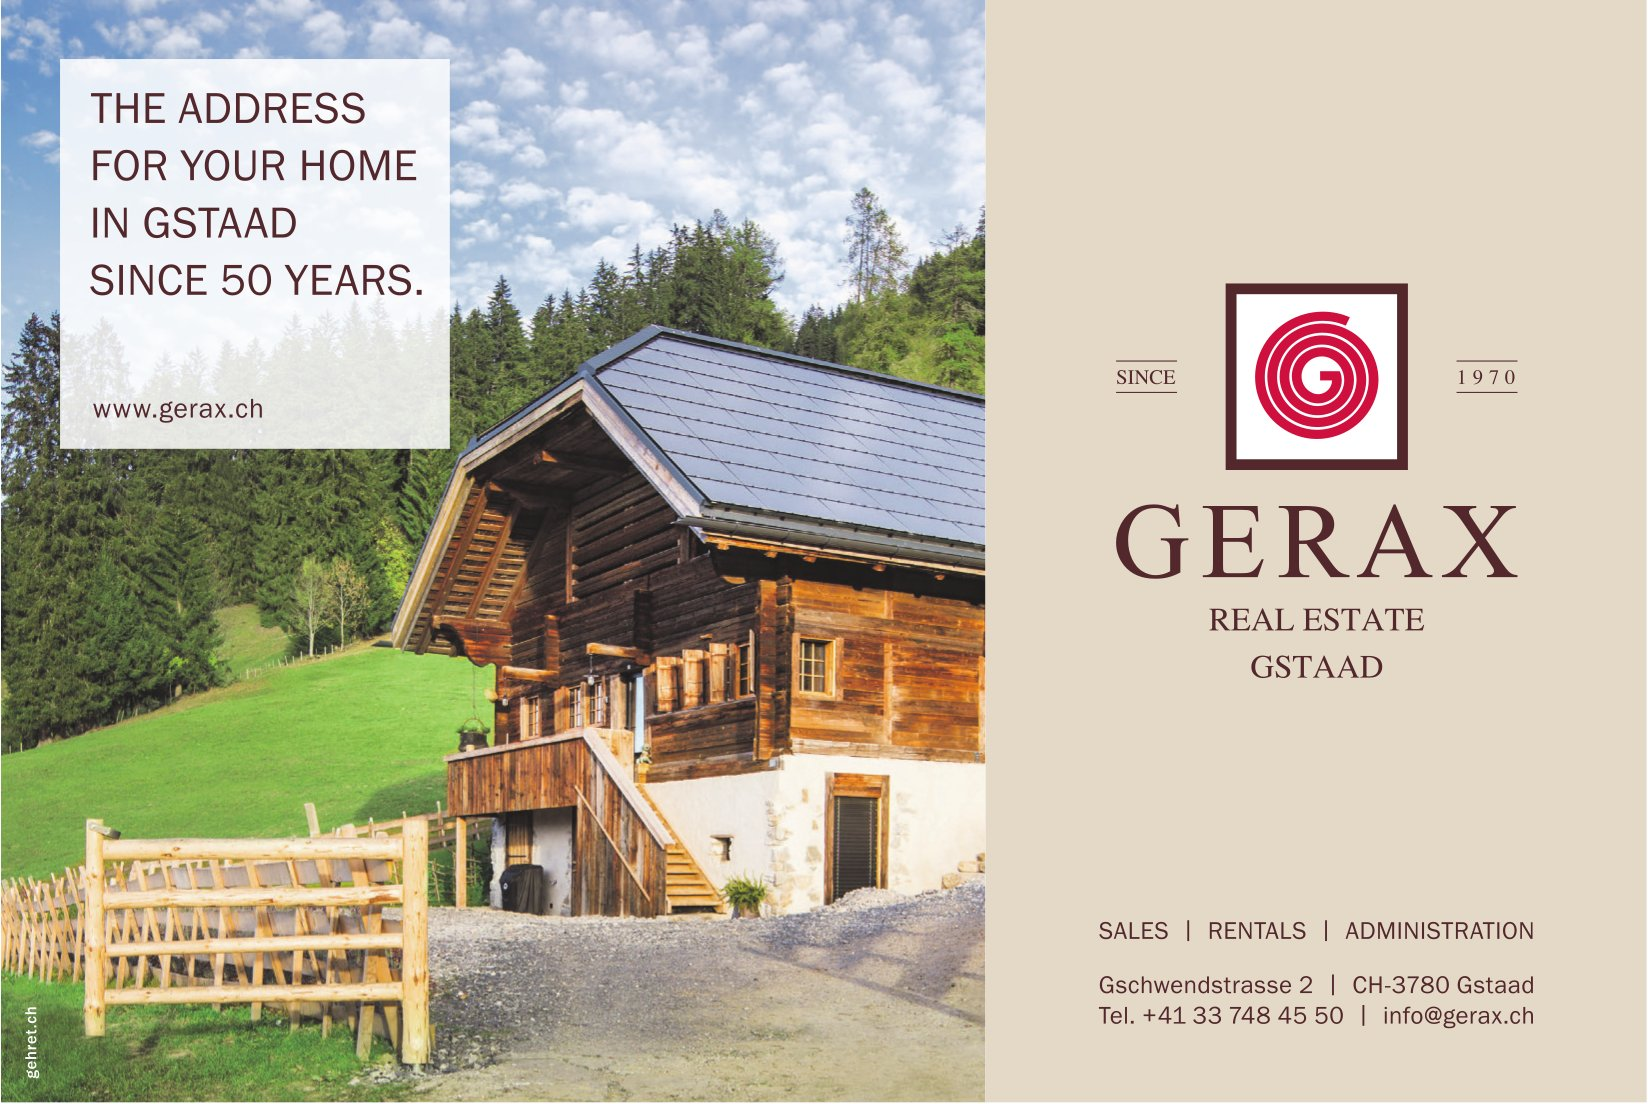 Gerax SA, Gstaad - The Address for your Home in Gstaad since 50 years.